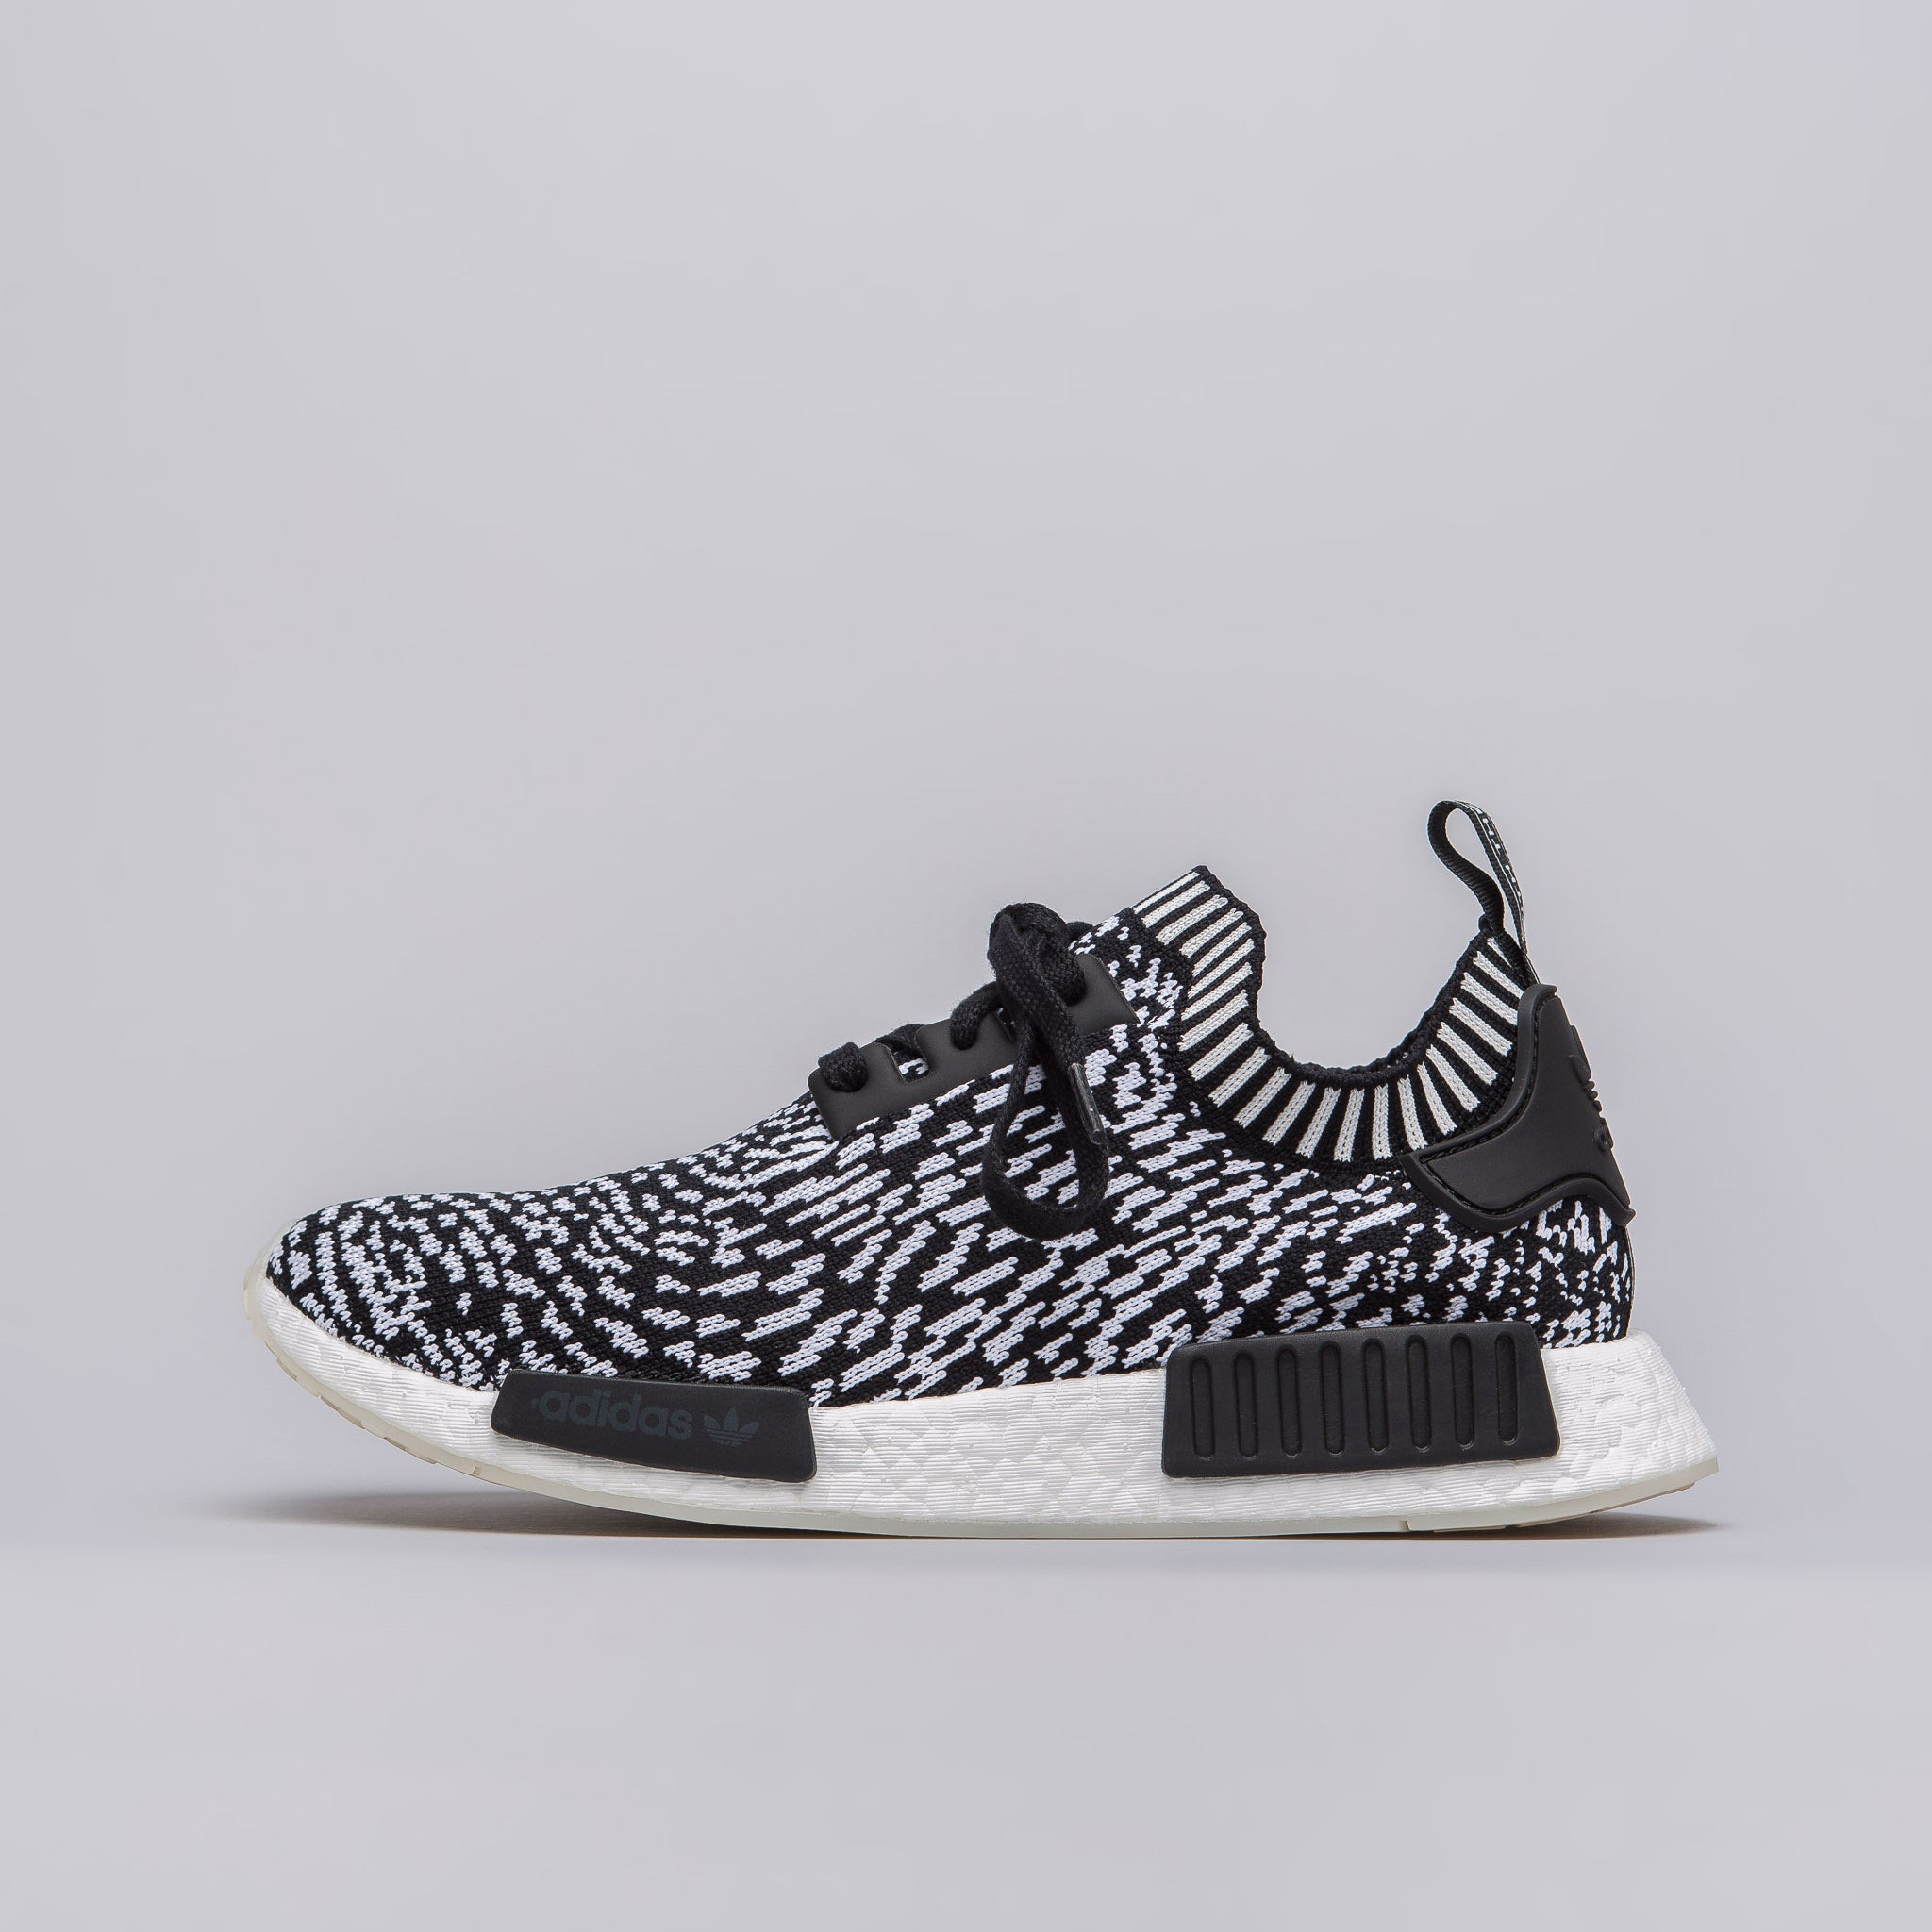 NEW WOMEN'S ADIDAS NMD R1 RUNNER RAW PINK